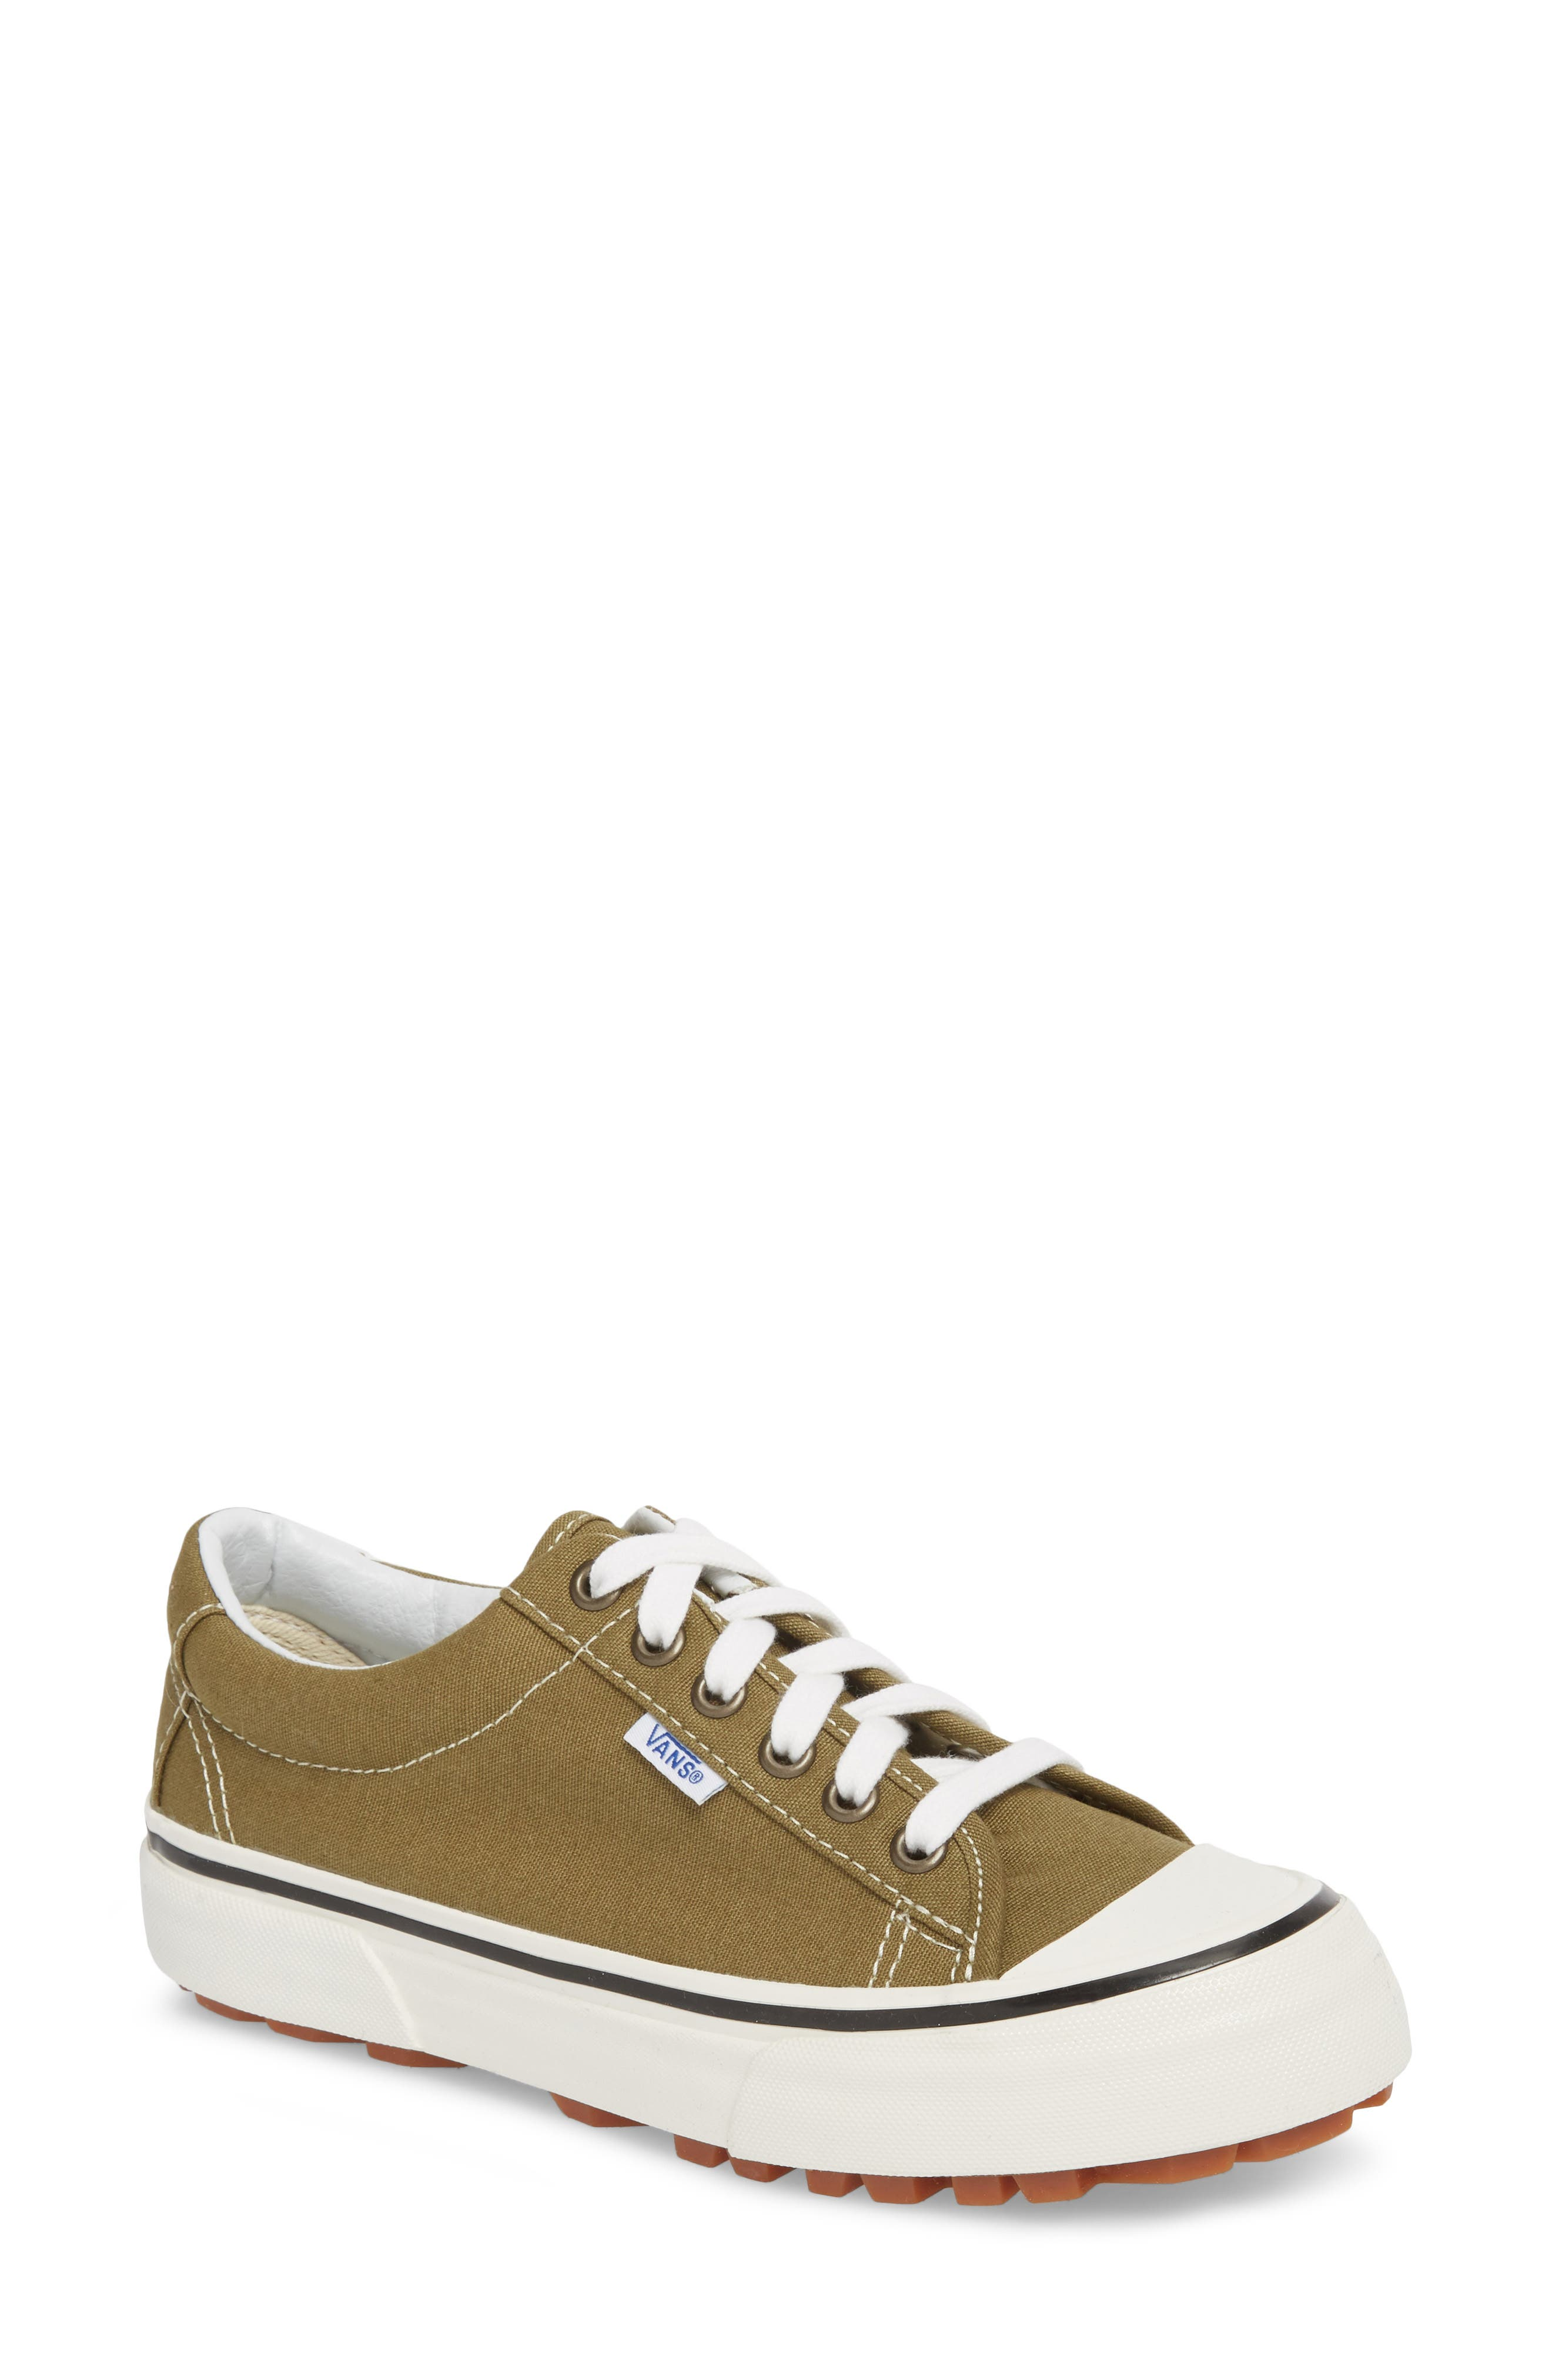 Anaheim Factory Style 29 DX Sneaker,                         Main,                         color, Anaheim Factory Olive